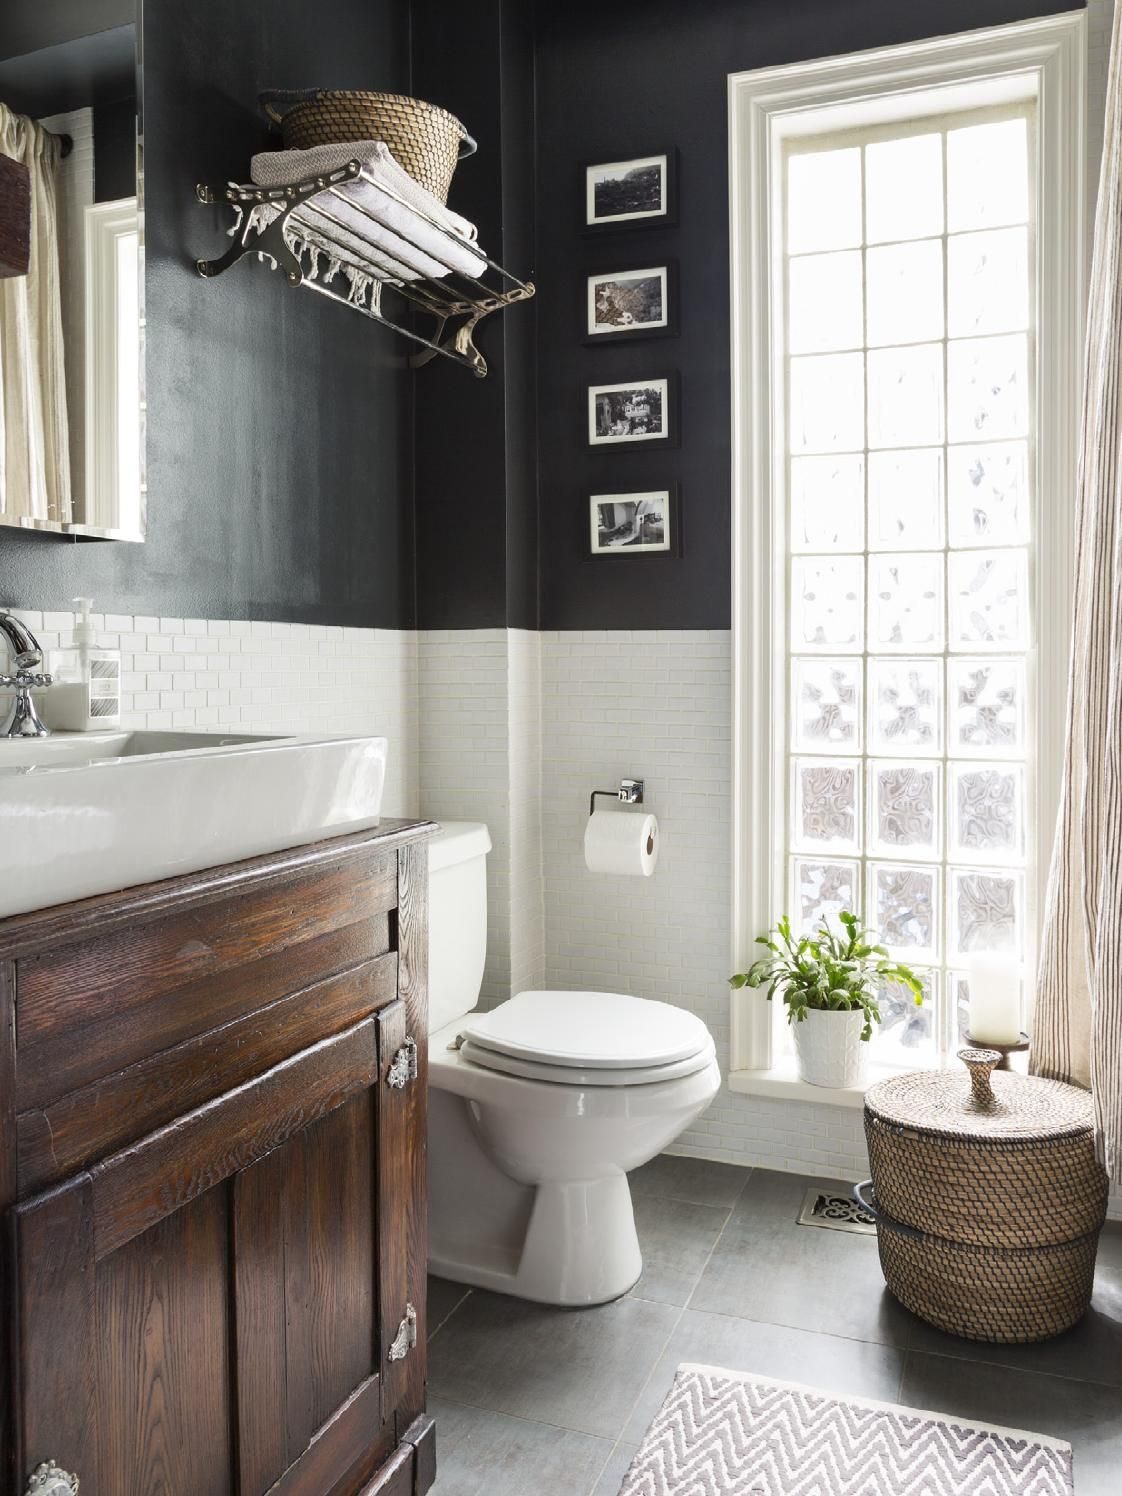 Bathroom window decor  issue sara dan and addieus home is a delicious mix of colour